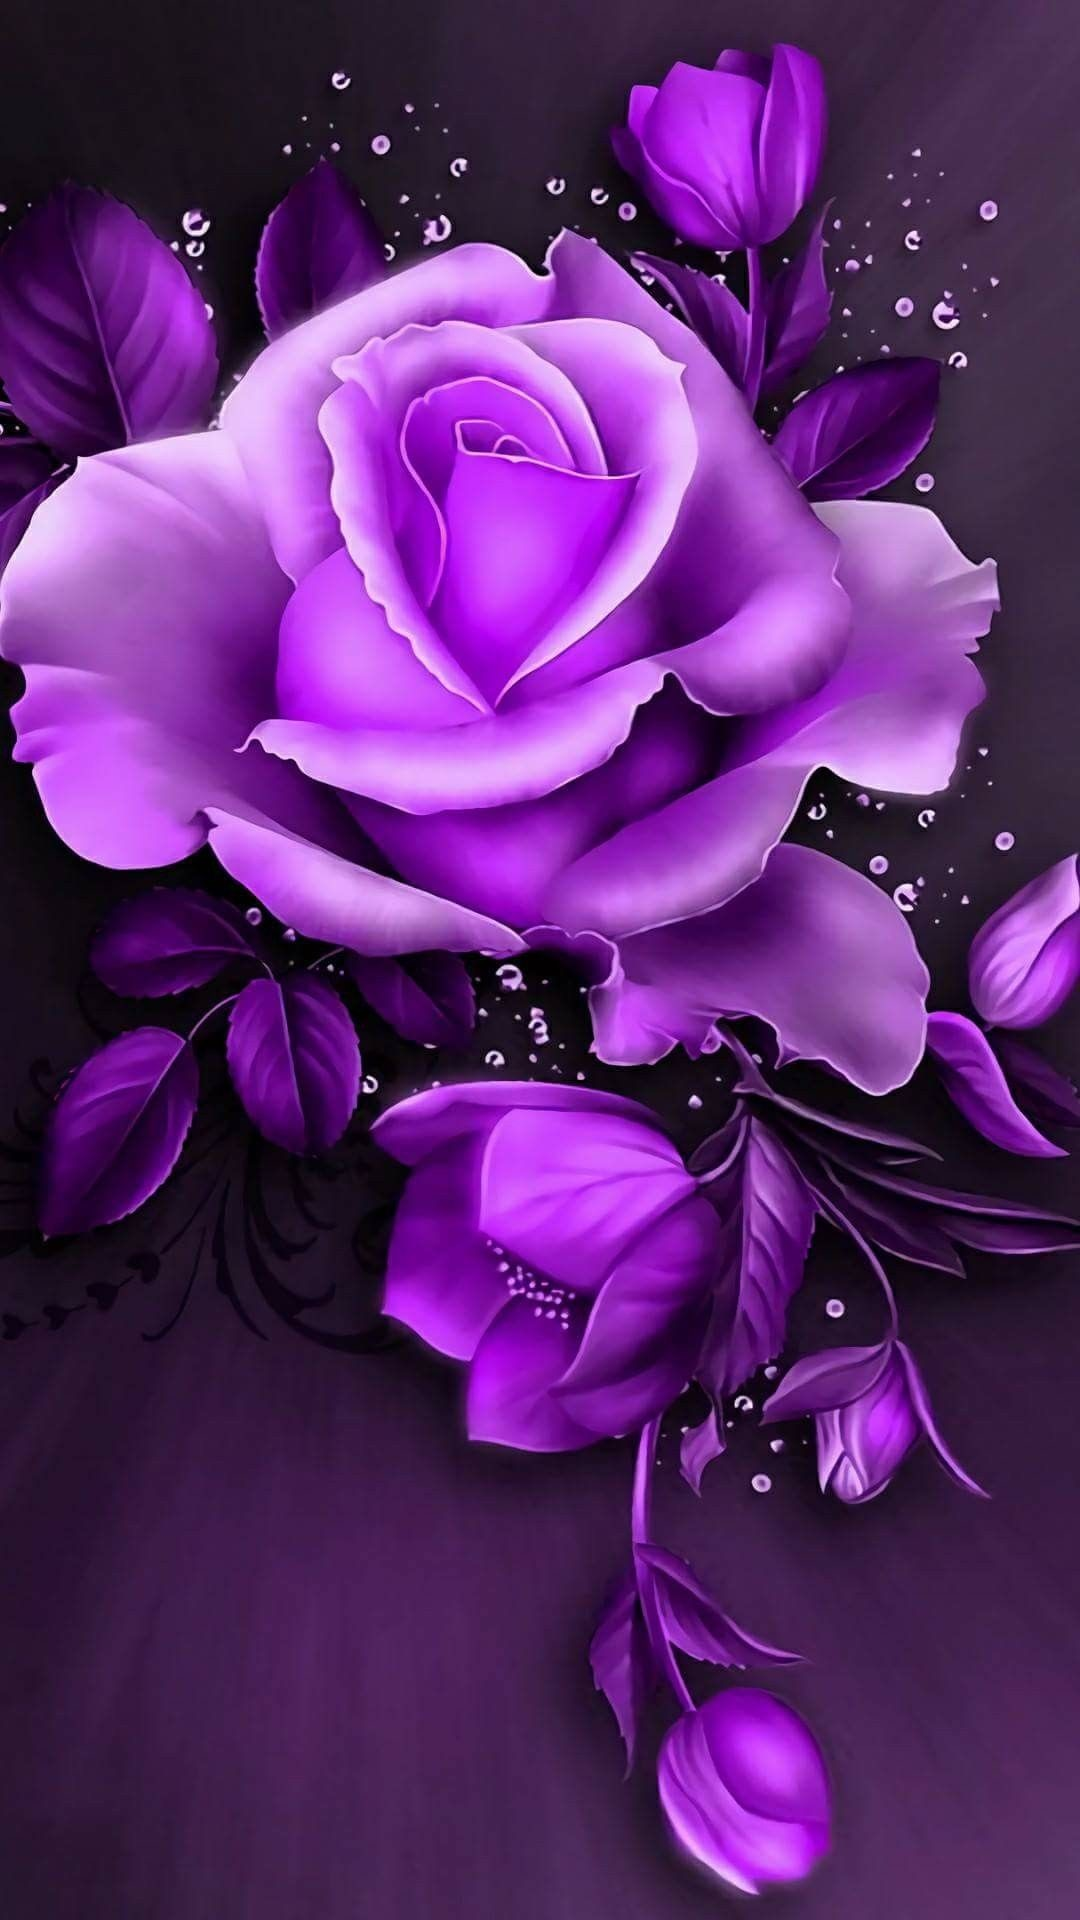 Res: 1080x1920, Rose Wallpaper, Wallpaper Backgrounds, Purple Roses, Pink Purple, Tattoo,  Digital Art, Animation, Plants, Tattoo Art